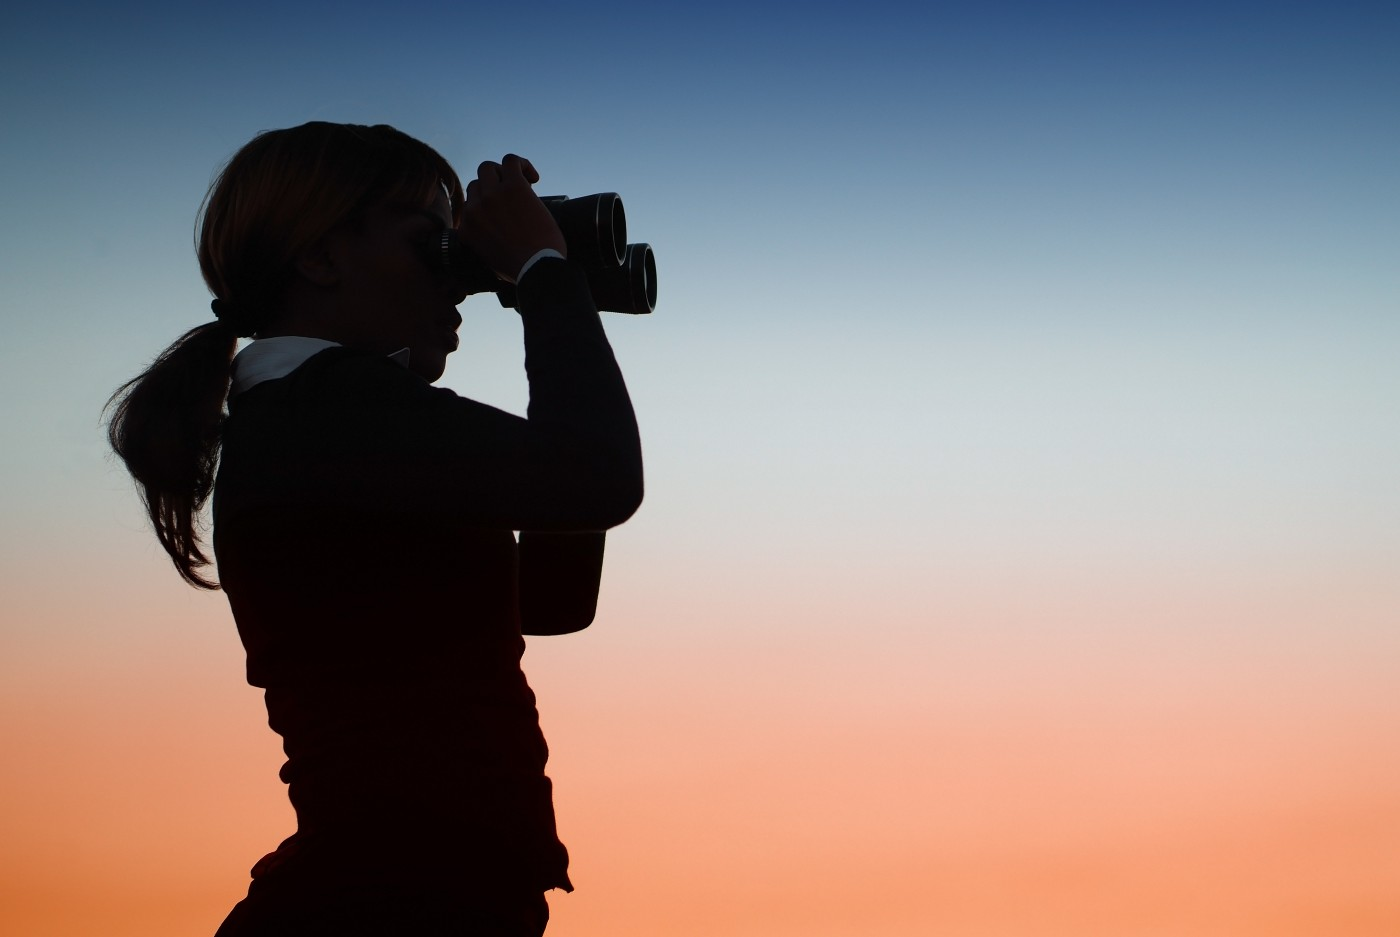 https://tickertapecdn.tdameritrade.com/assets/images/pages/md/Business woman looking through binoculars: How to spot a new volatility regime